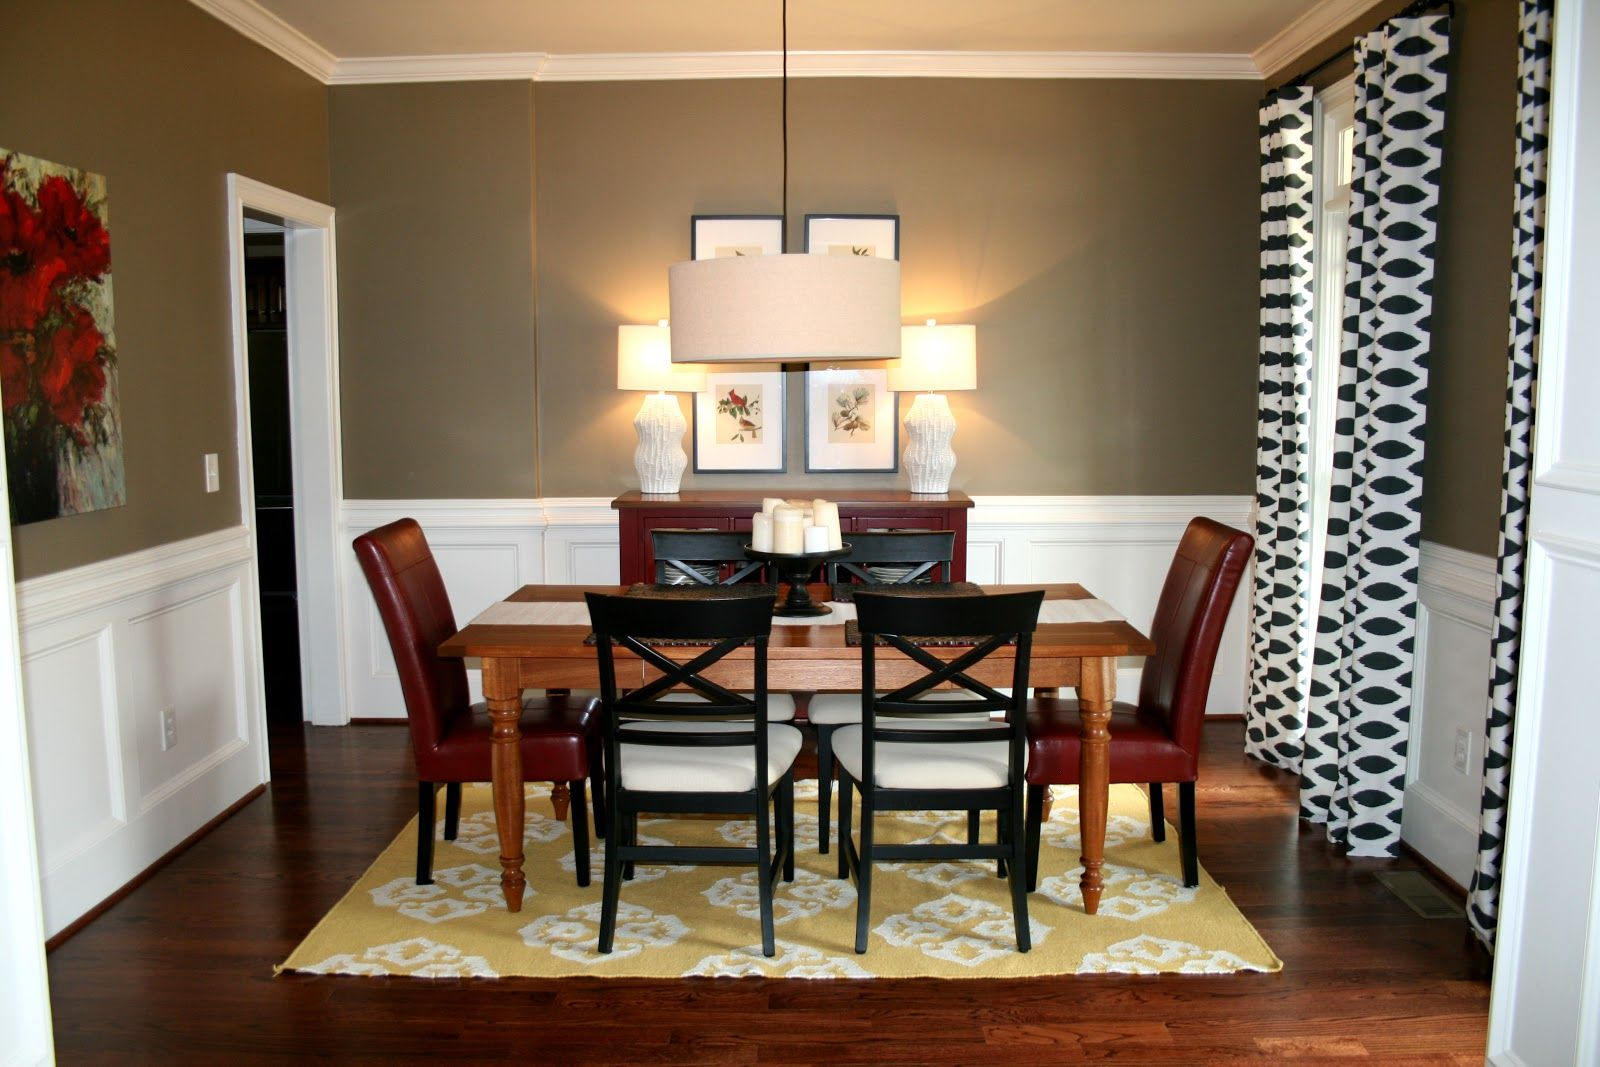 Nice Dining Room Ideas On Pinterest Part - 9: The Bozeman Bungalow: Dining Room Updates